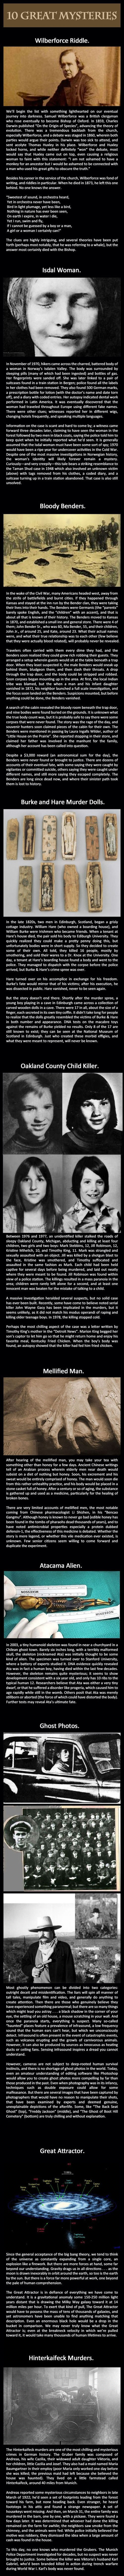 I lived in Oakland County during the killings & was the age of the victims. It was a tense time. A well known substitute teacher, whom I had lots of times, was a prime suspect.